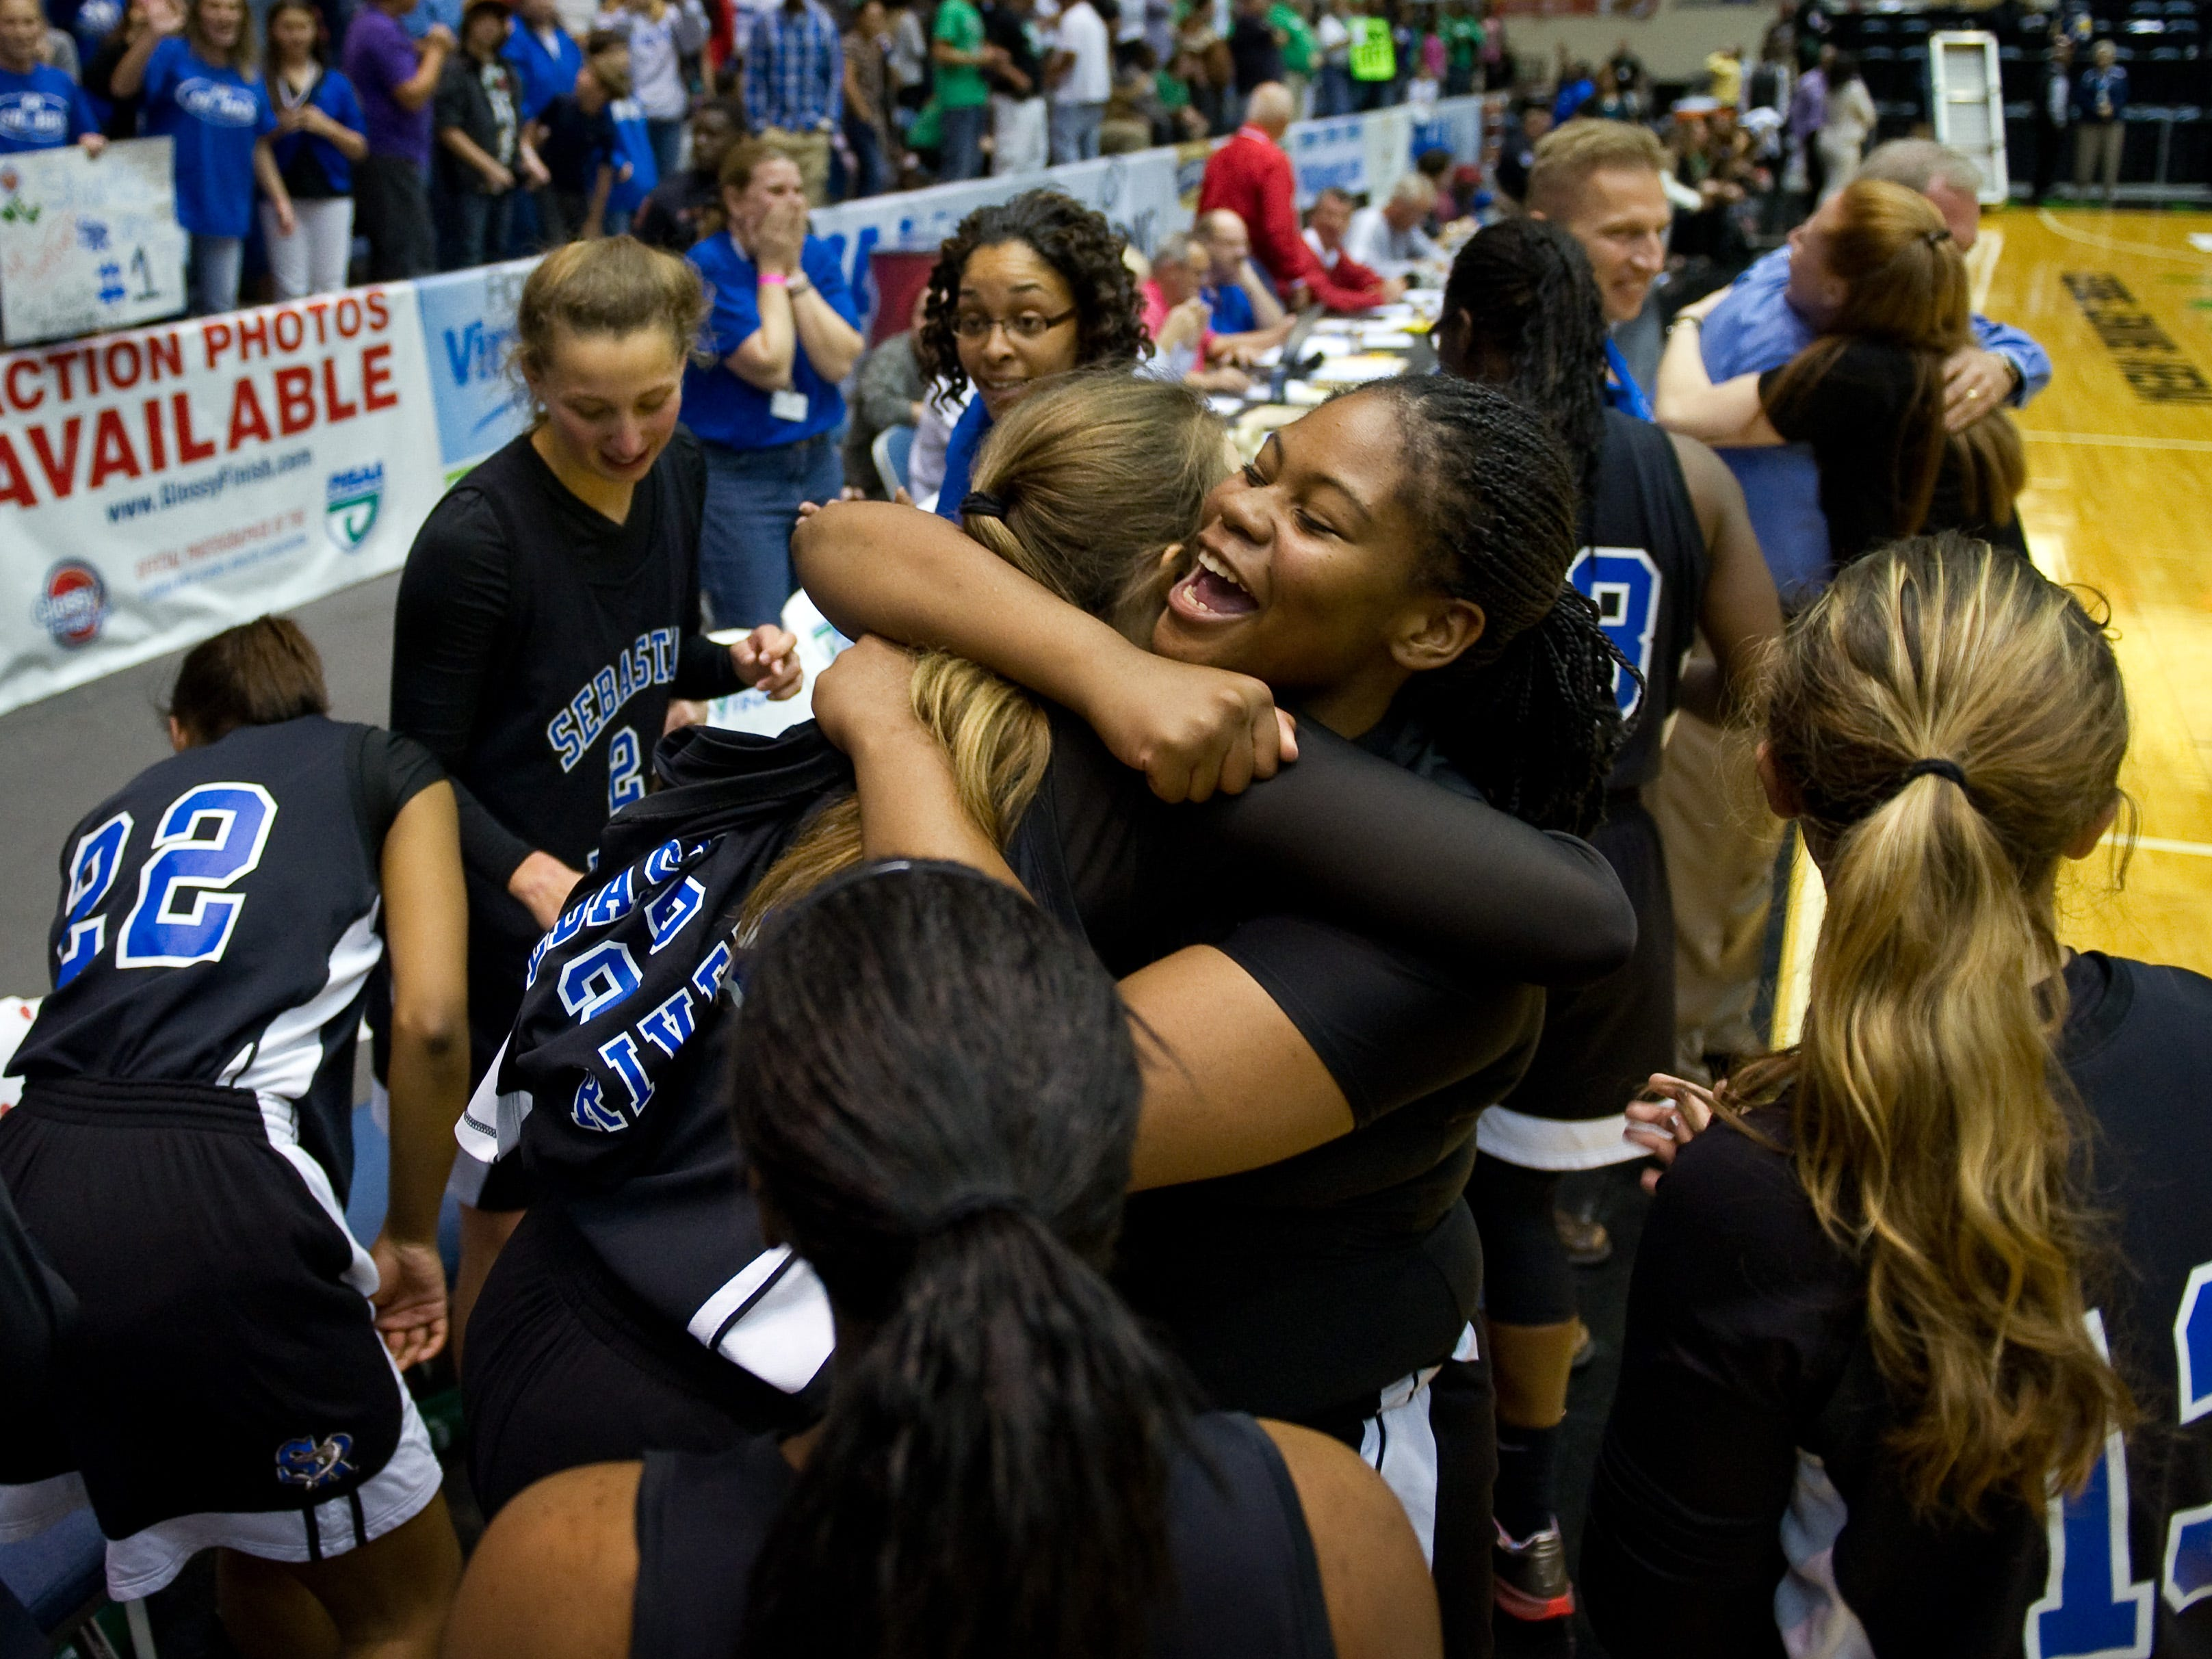 Tayler Smith (right center), celebrates Saturday, Feb. 25, 2012, with her teammates following Sebastian River High School's 50-46 win over Haines City High School during the 2012 FHSAA Class 7A Girls Basketball Championship in Lakeland.